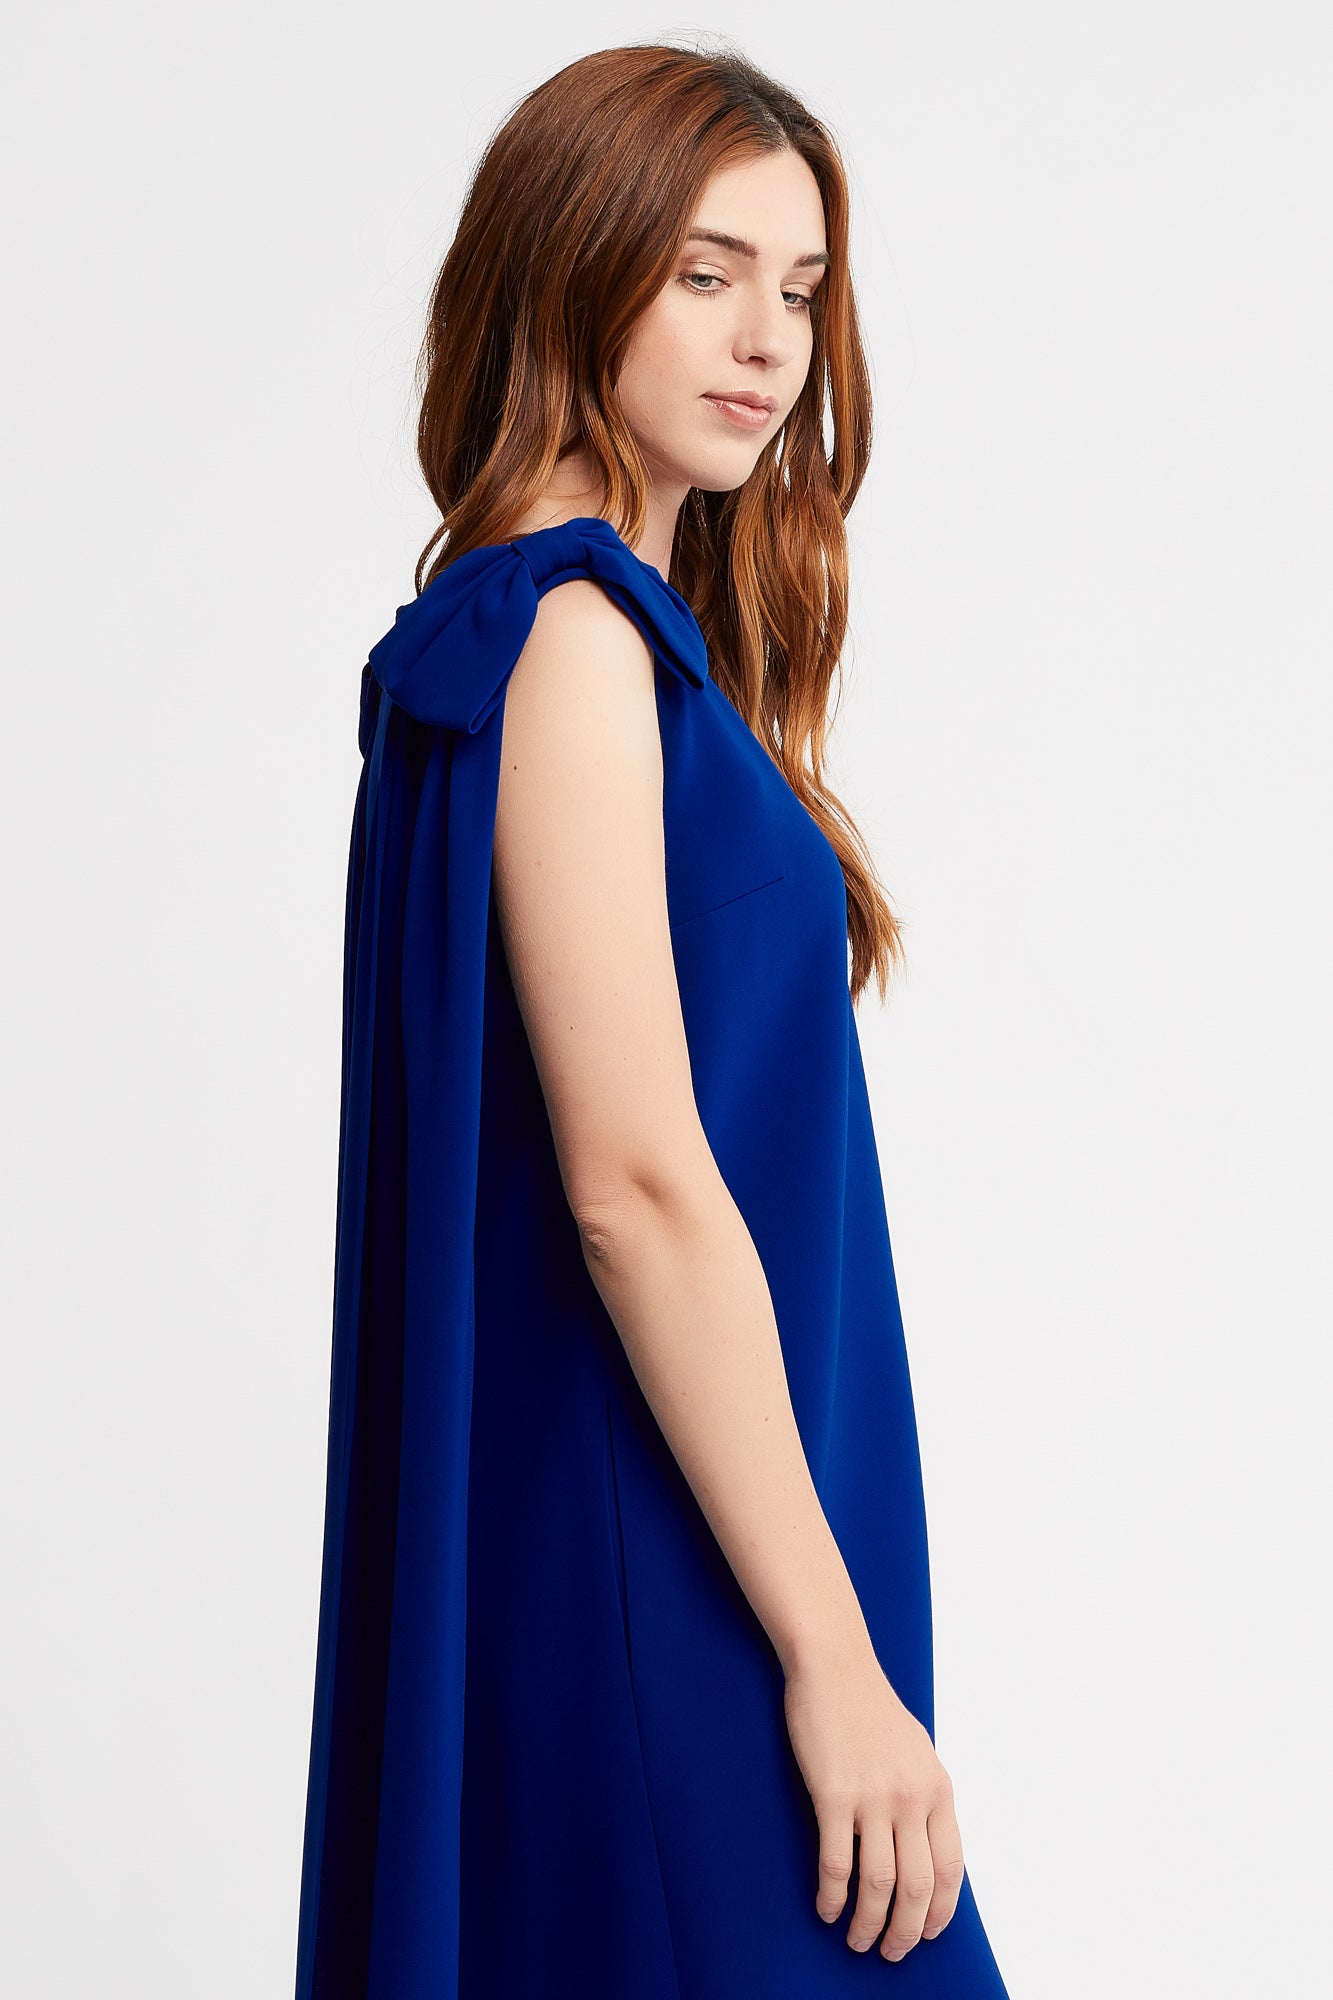 Marina-Rose Sleeveless Cocktail Dress in Cobalt with Bows